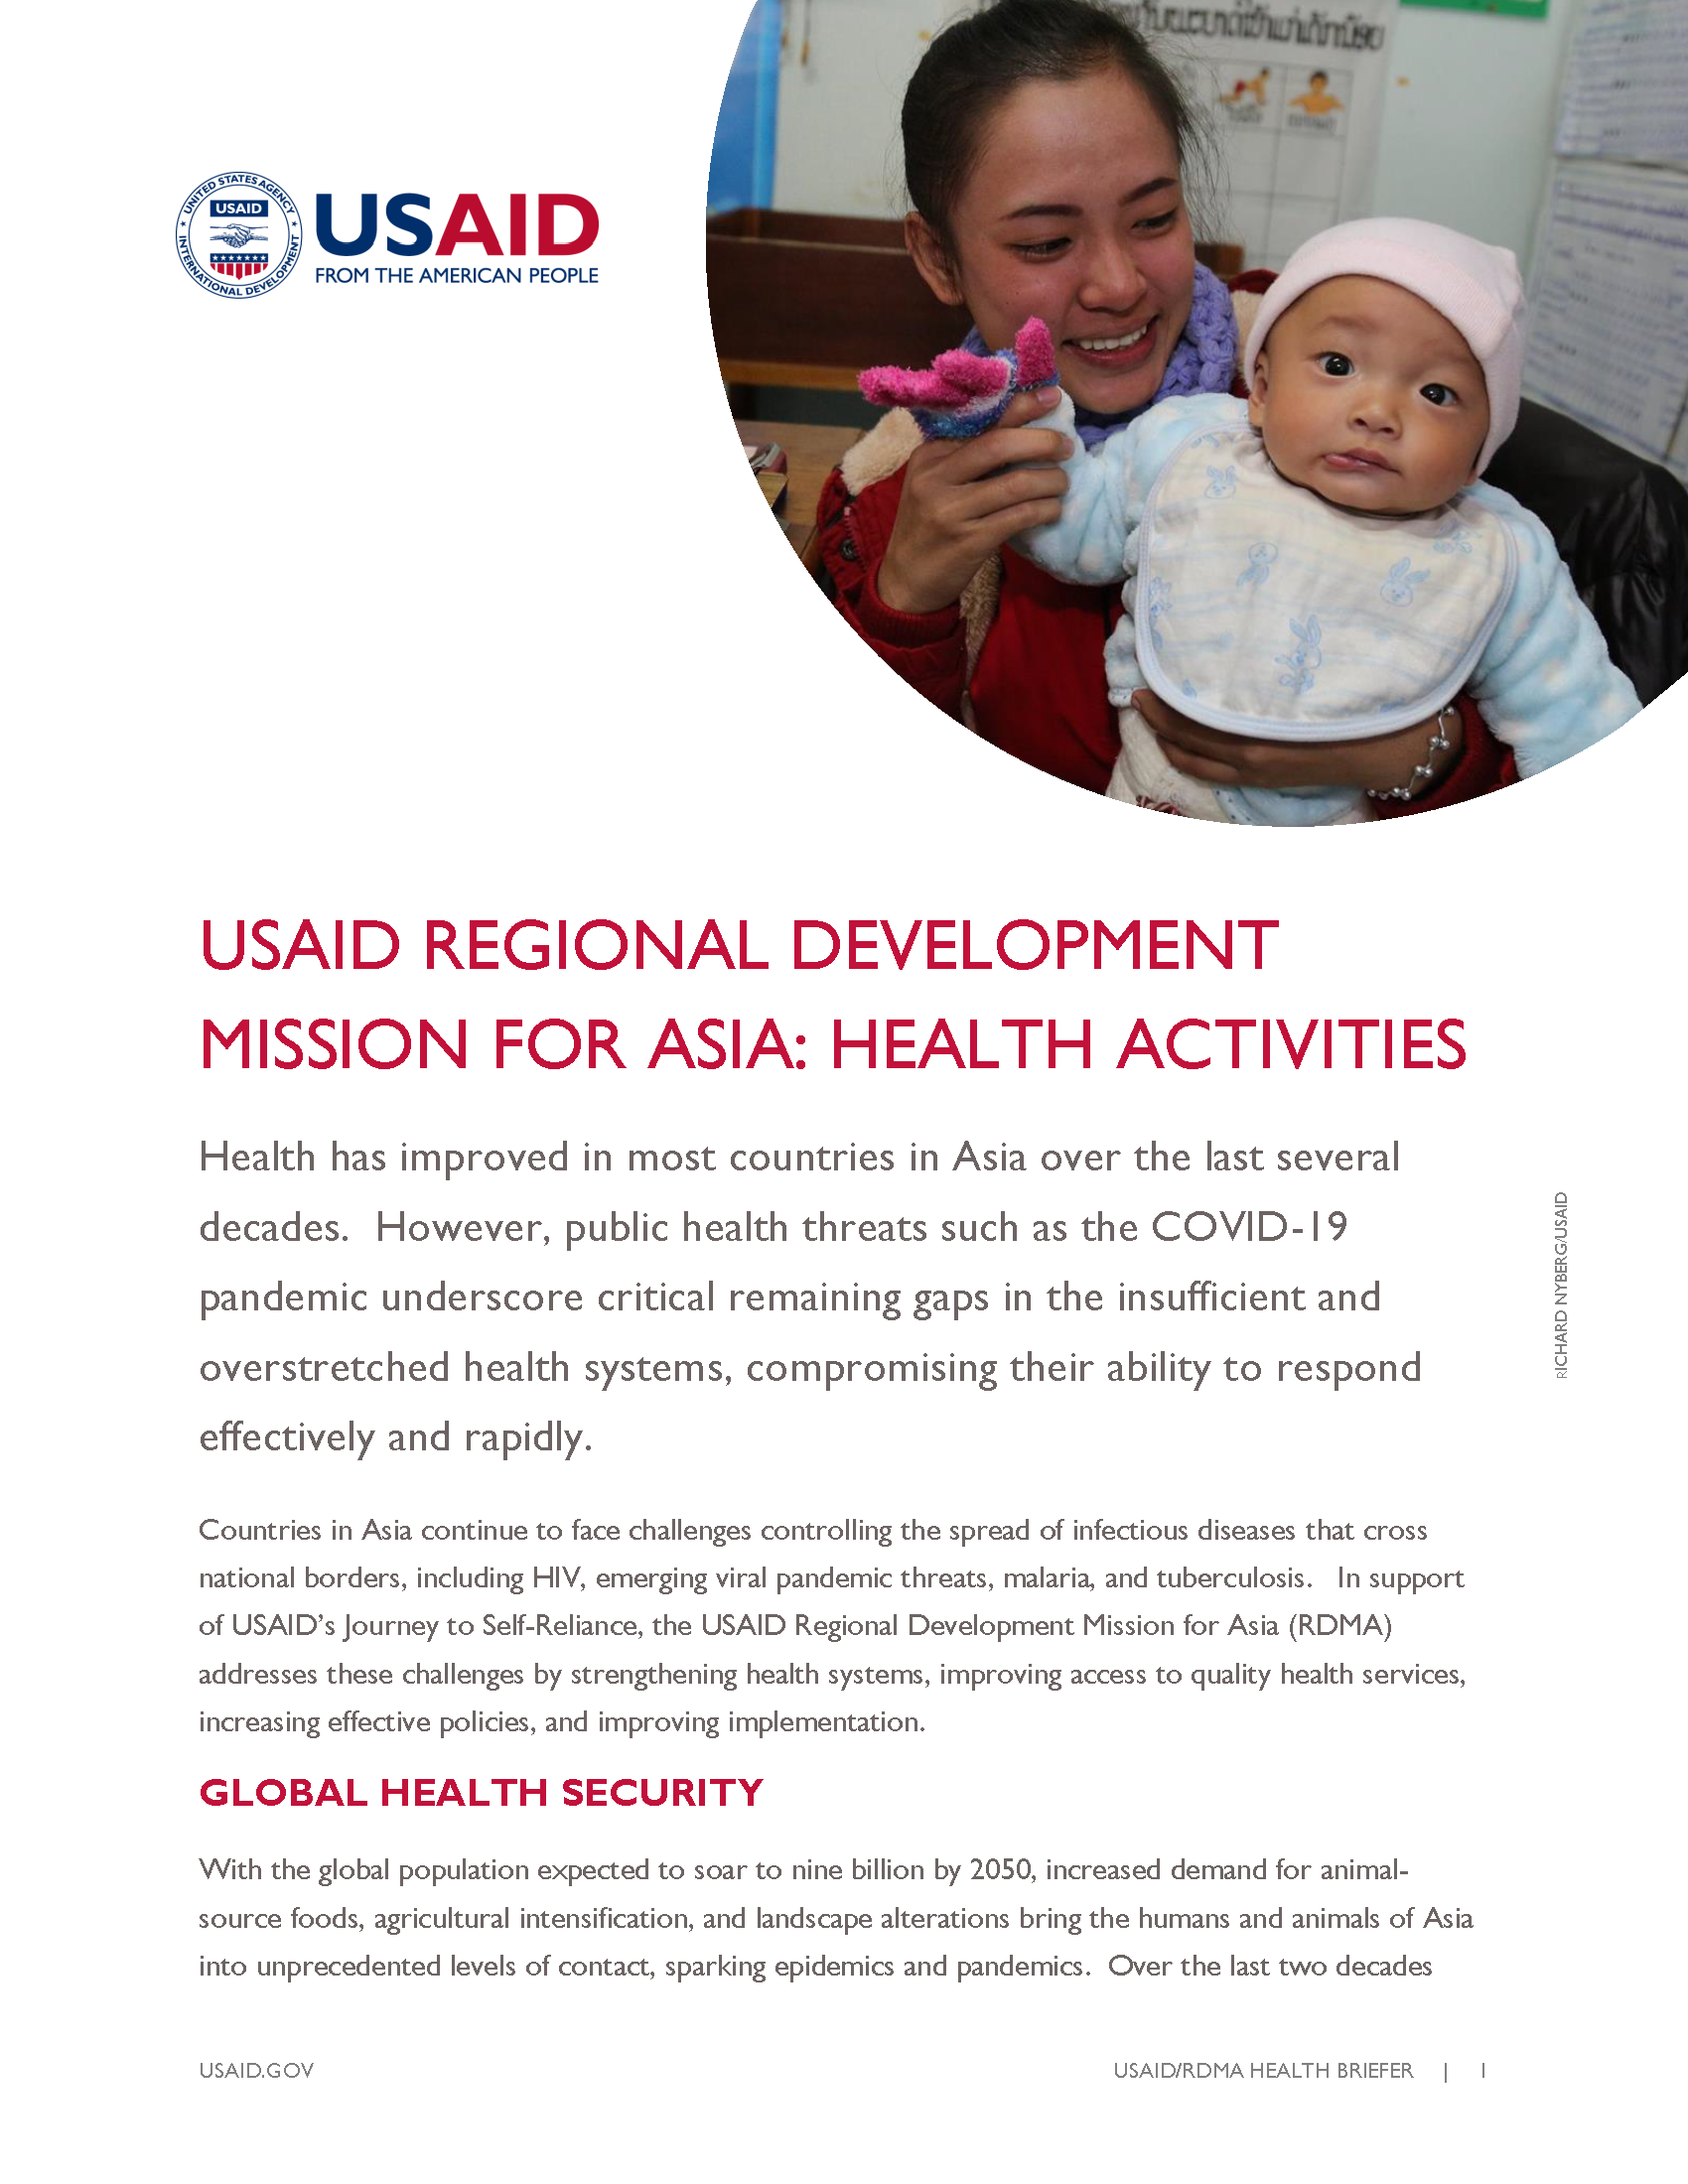 USAID Regional Development Mission for Asia: Health Activities Fact Sheet